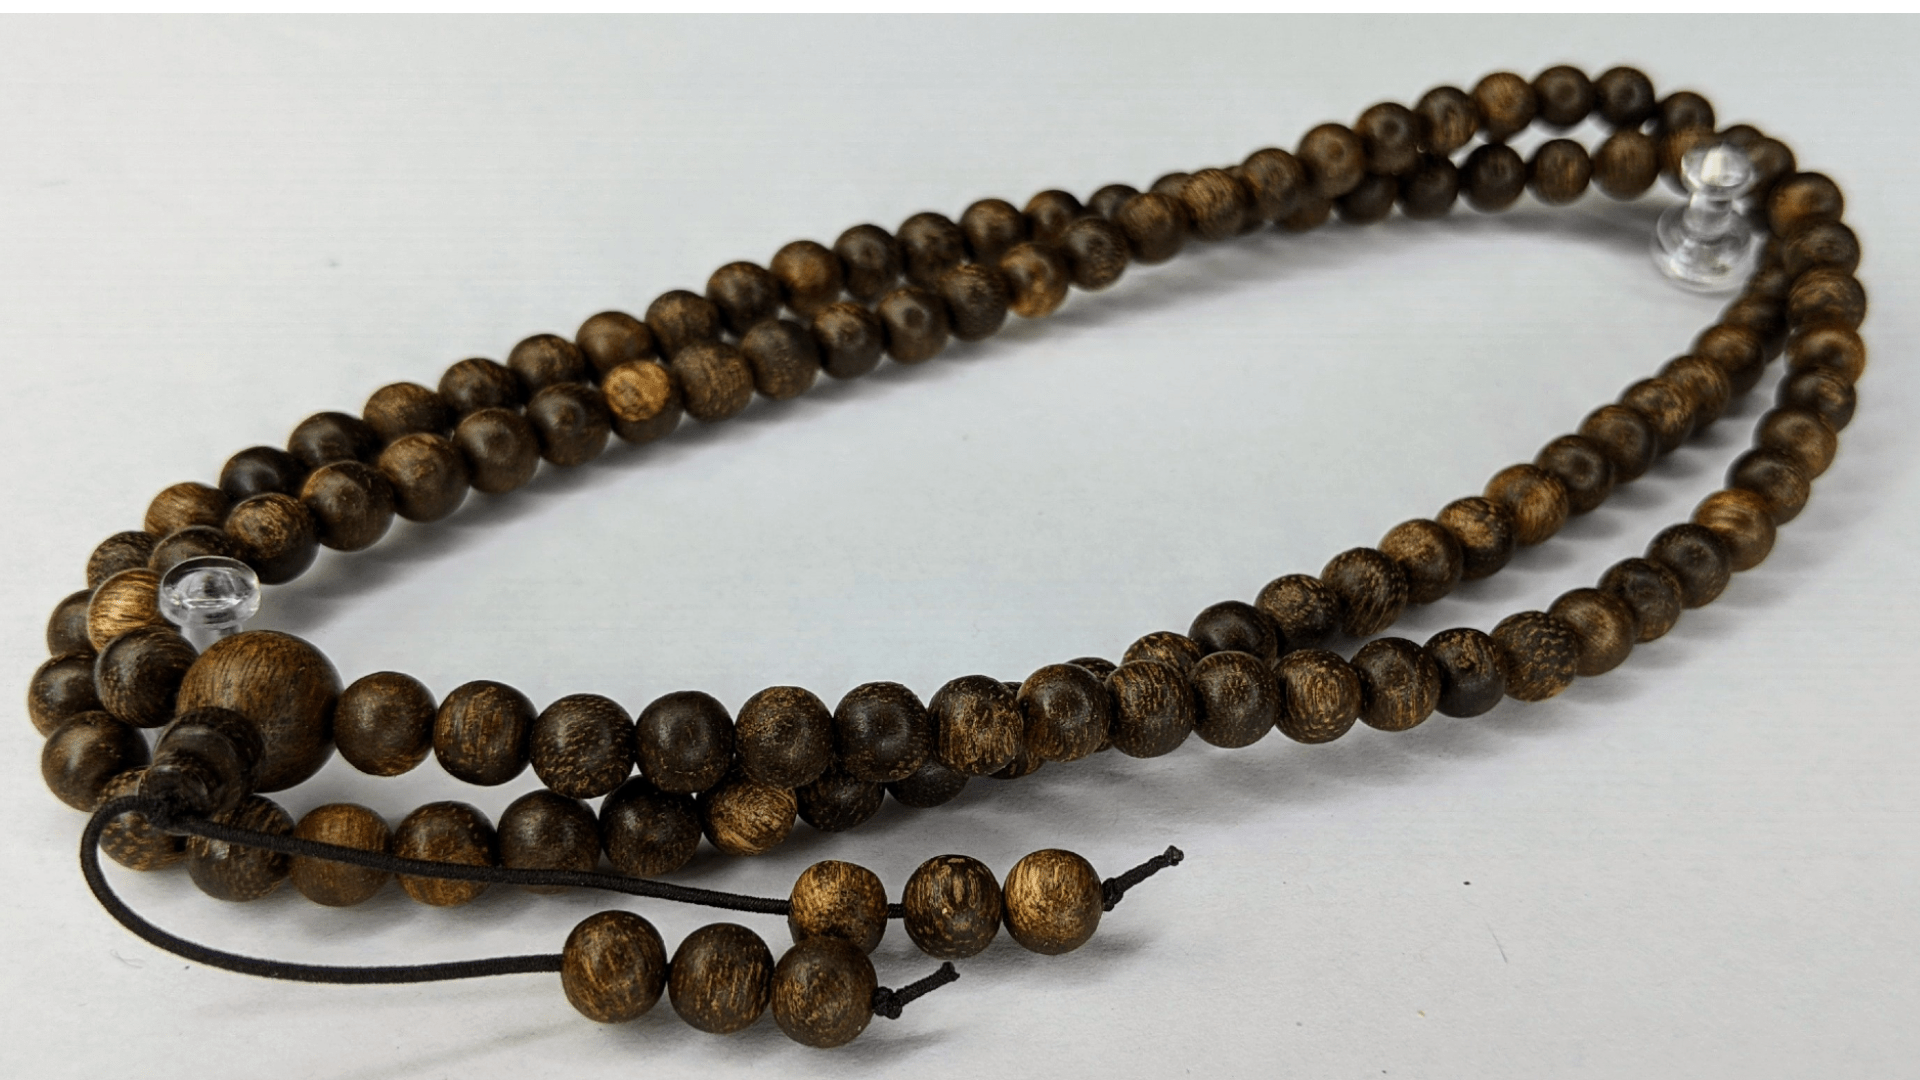 Beads *New* The Ethereal number 2 - Wild Agarwood 108 mala from Berau East Borneo 6mm 13g